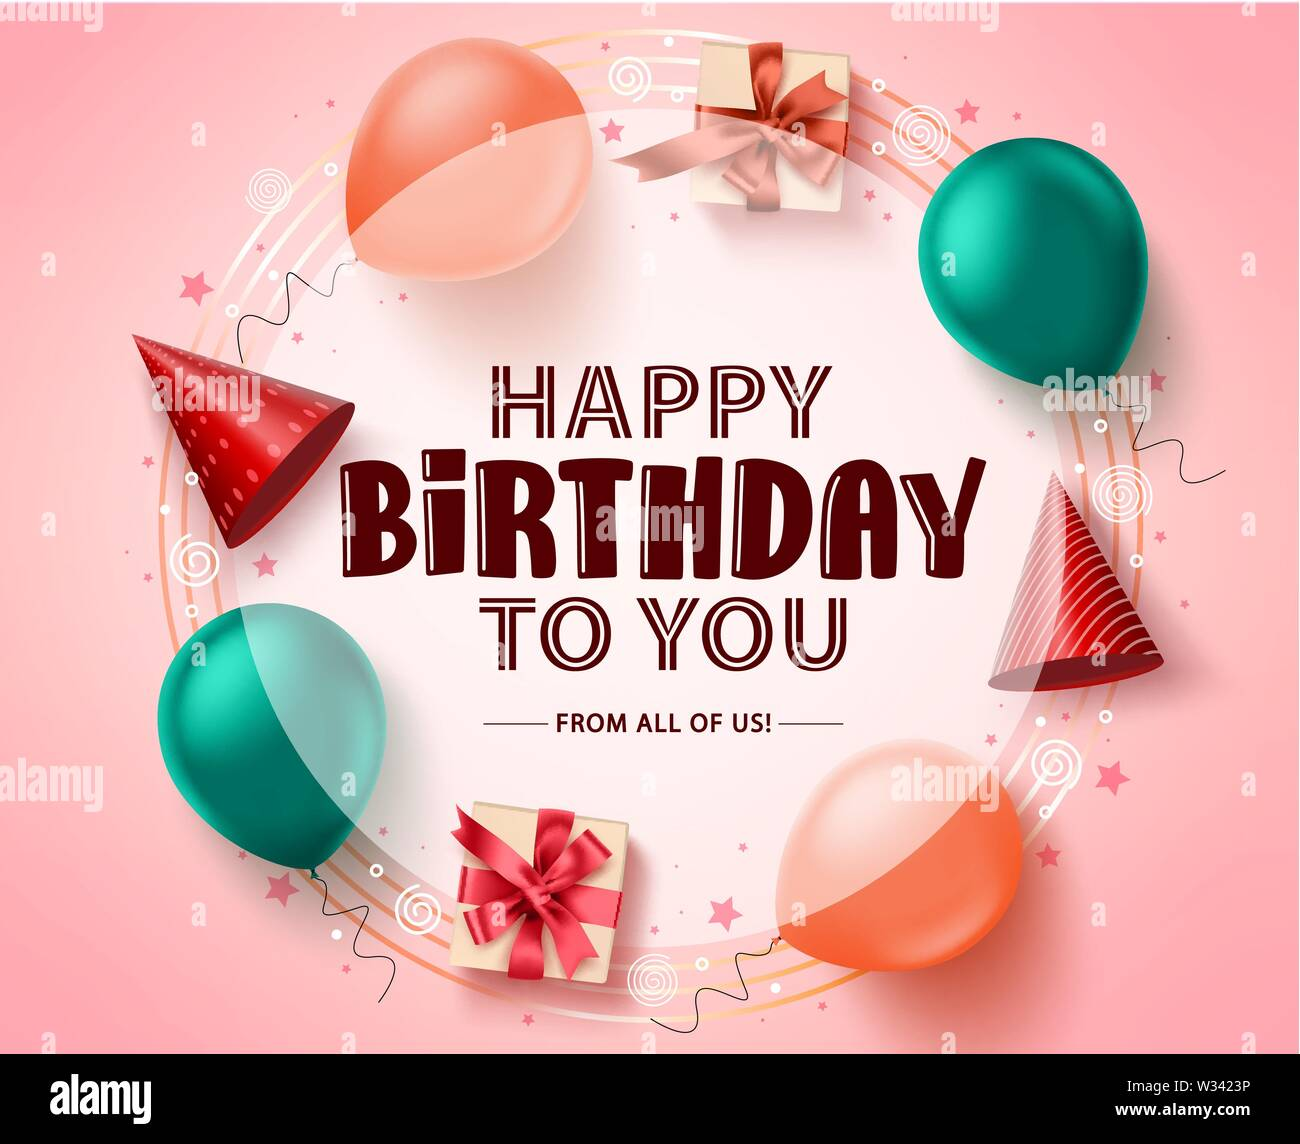 Happy Birthday Greeting Card Vector Banner Template. Happy